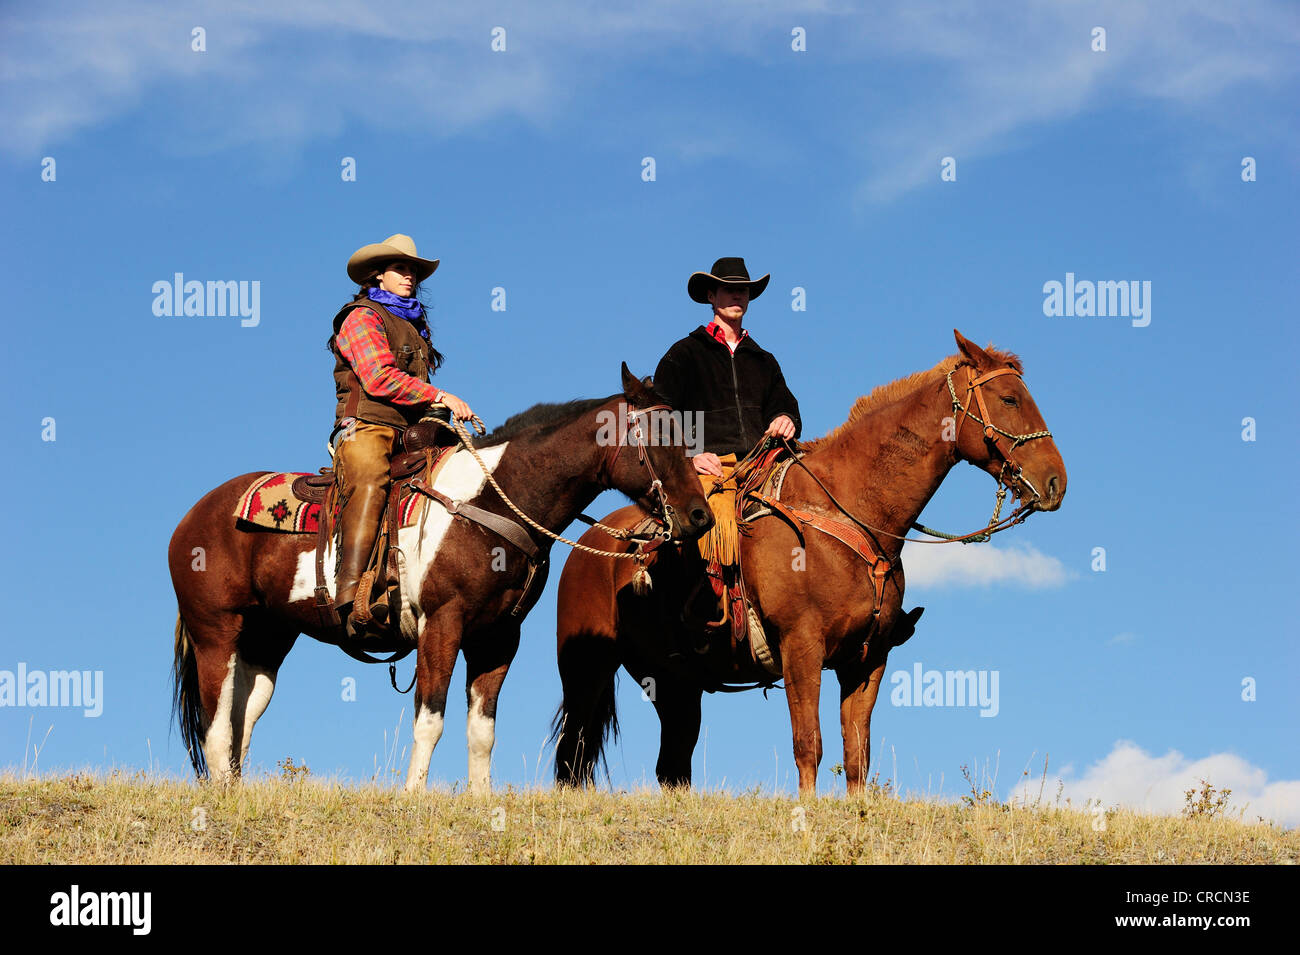 Cowgirl And Cowboy On Horses Looking Into The Distance